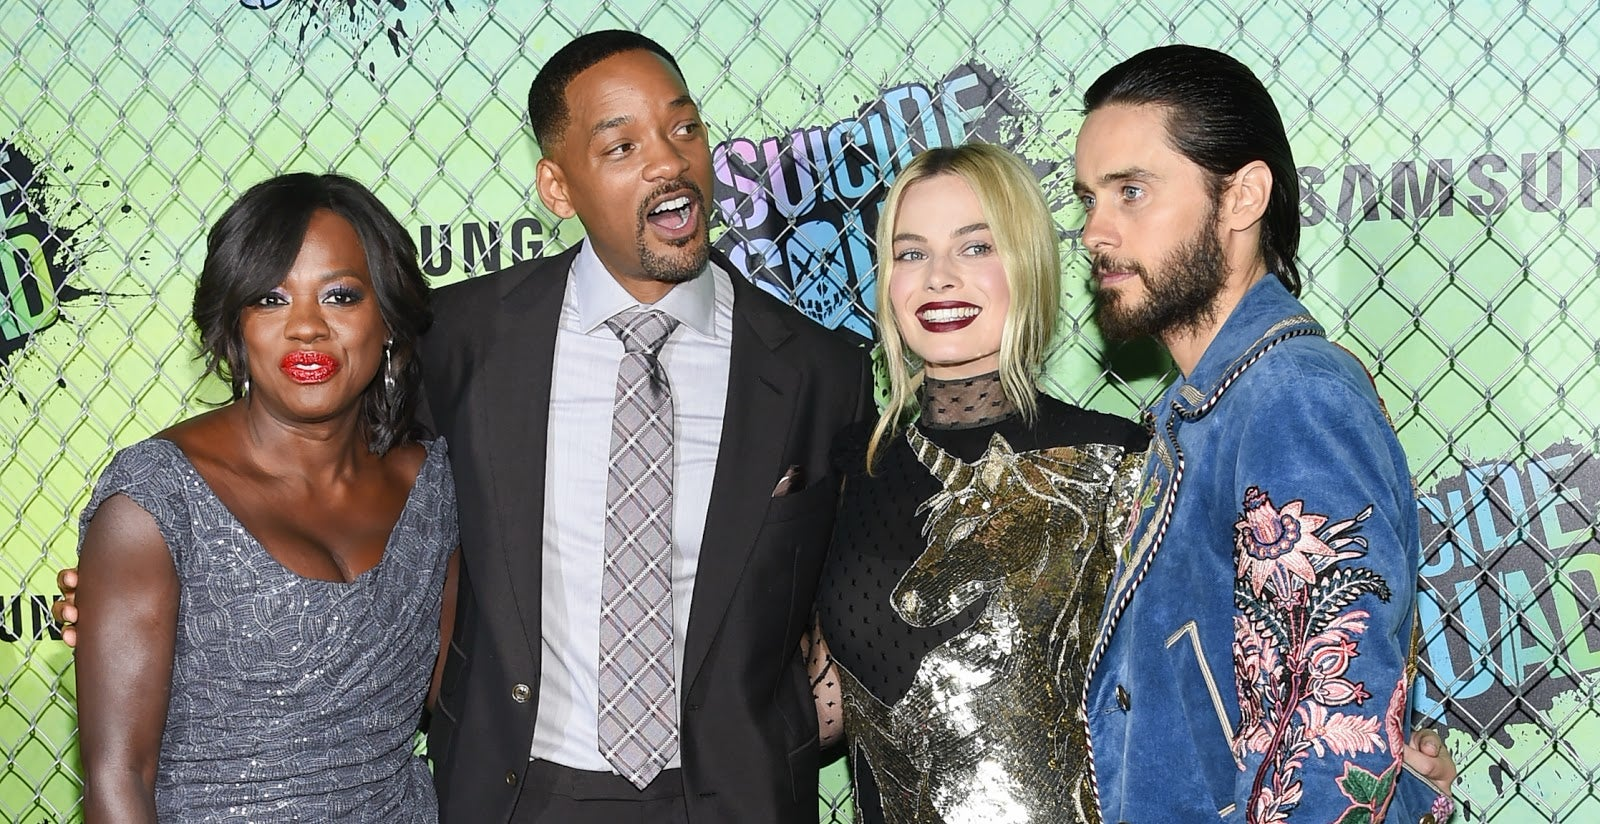 Suicide SquadFake: Will Smith Did Not Say He Hates Jared Leto (Though We'd Believe It)